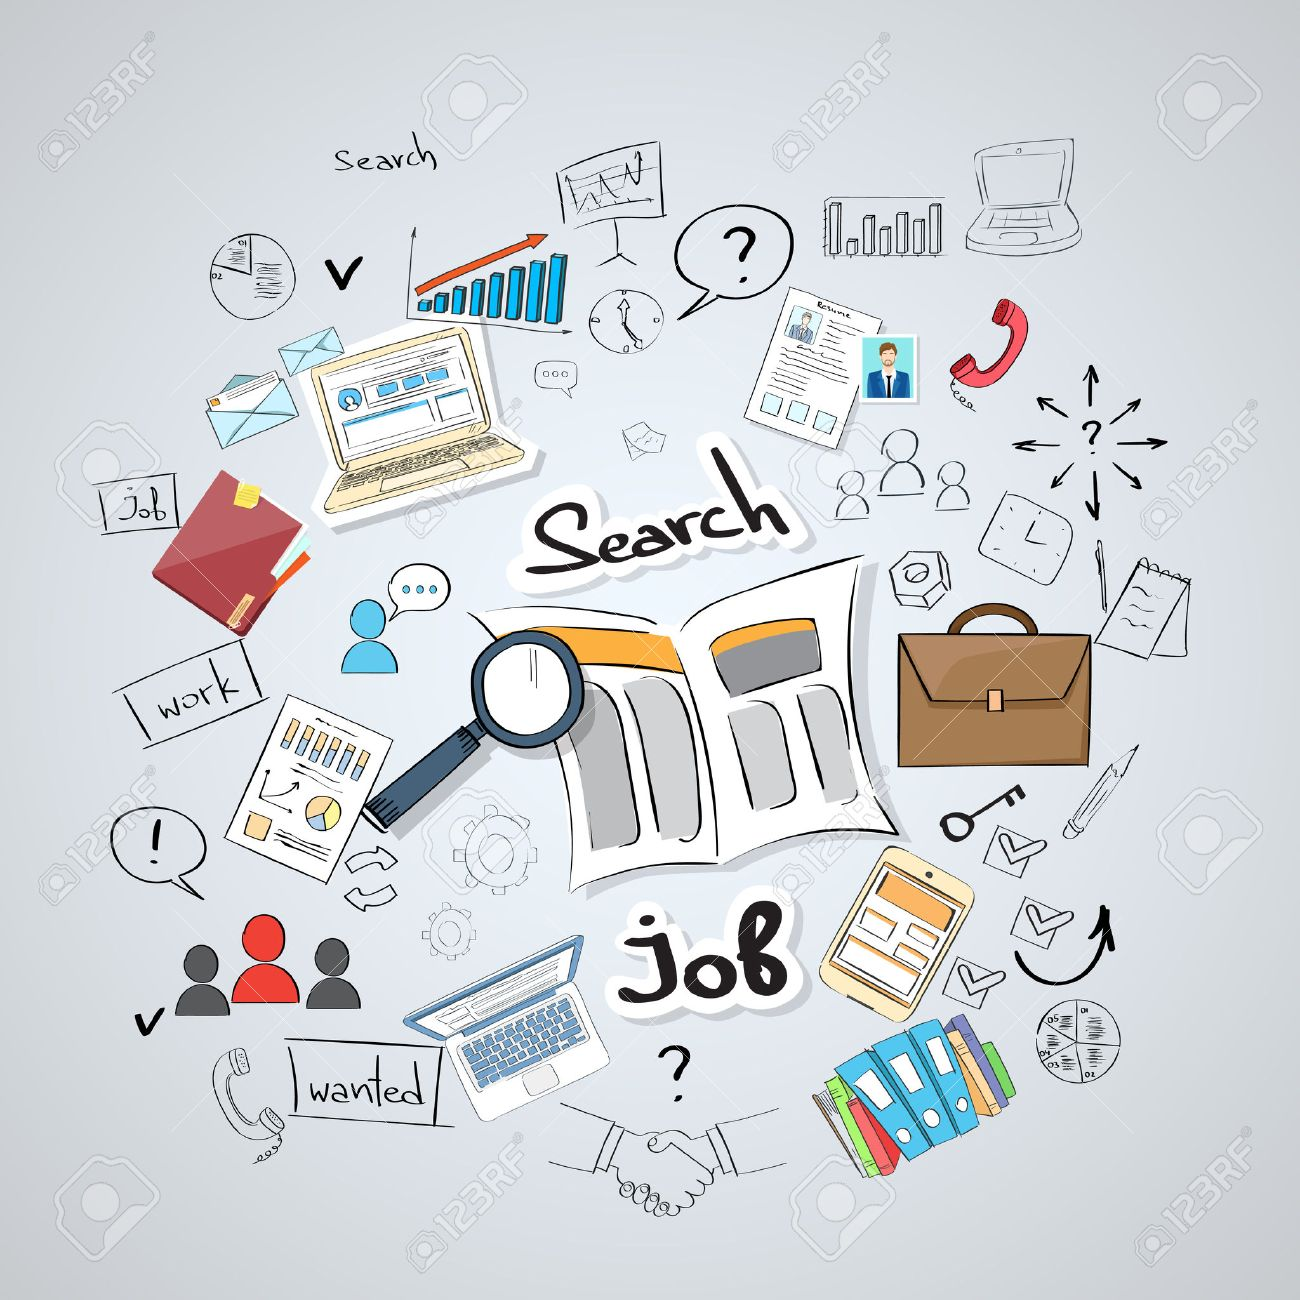 Business Searching Job Newspaper Classified Magnifying Glass Concept Doodle Hand Draw Sketch Background Vector Illustration - 47519823